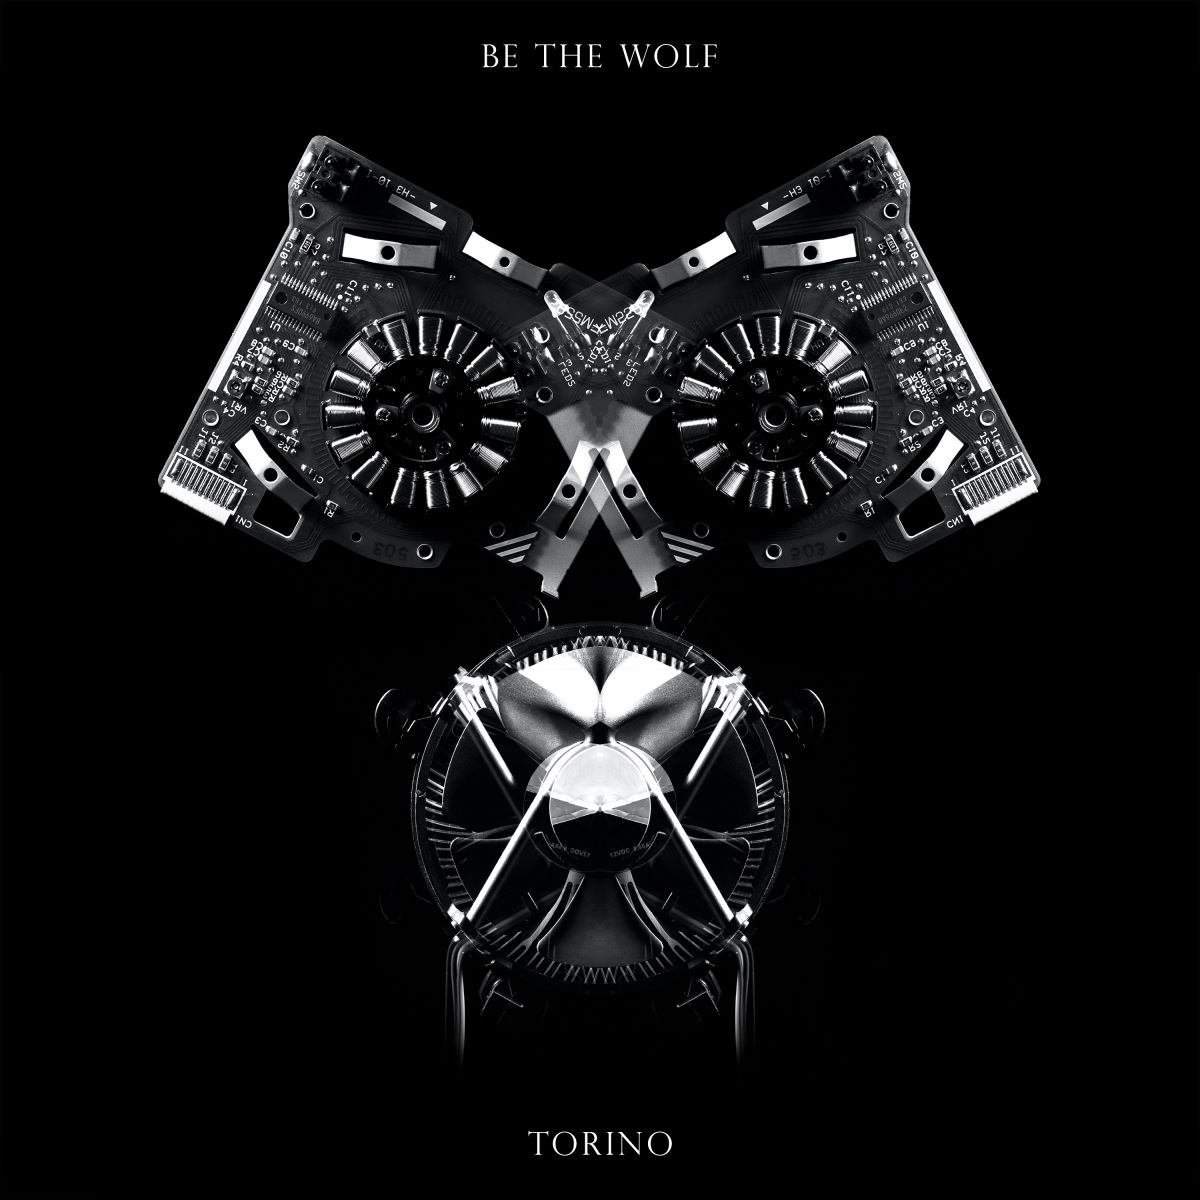 be the wolf - torino - album cover